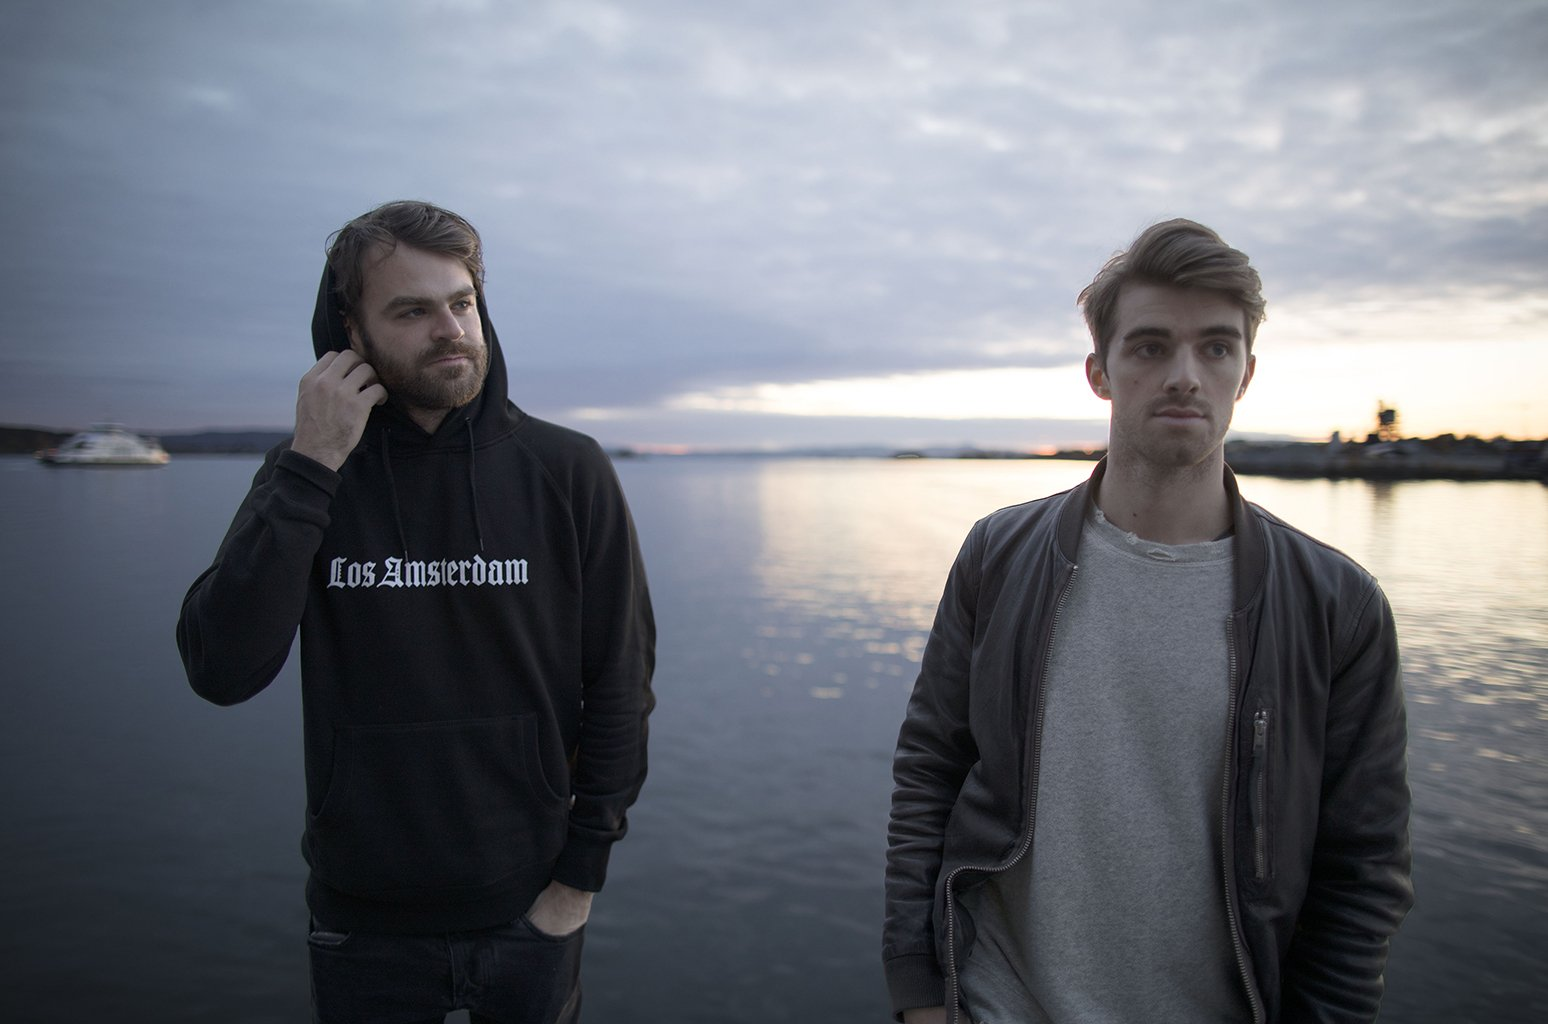 hhThe Chainsmokers - artist photos